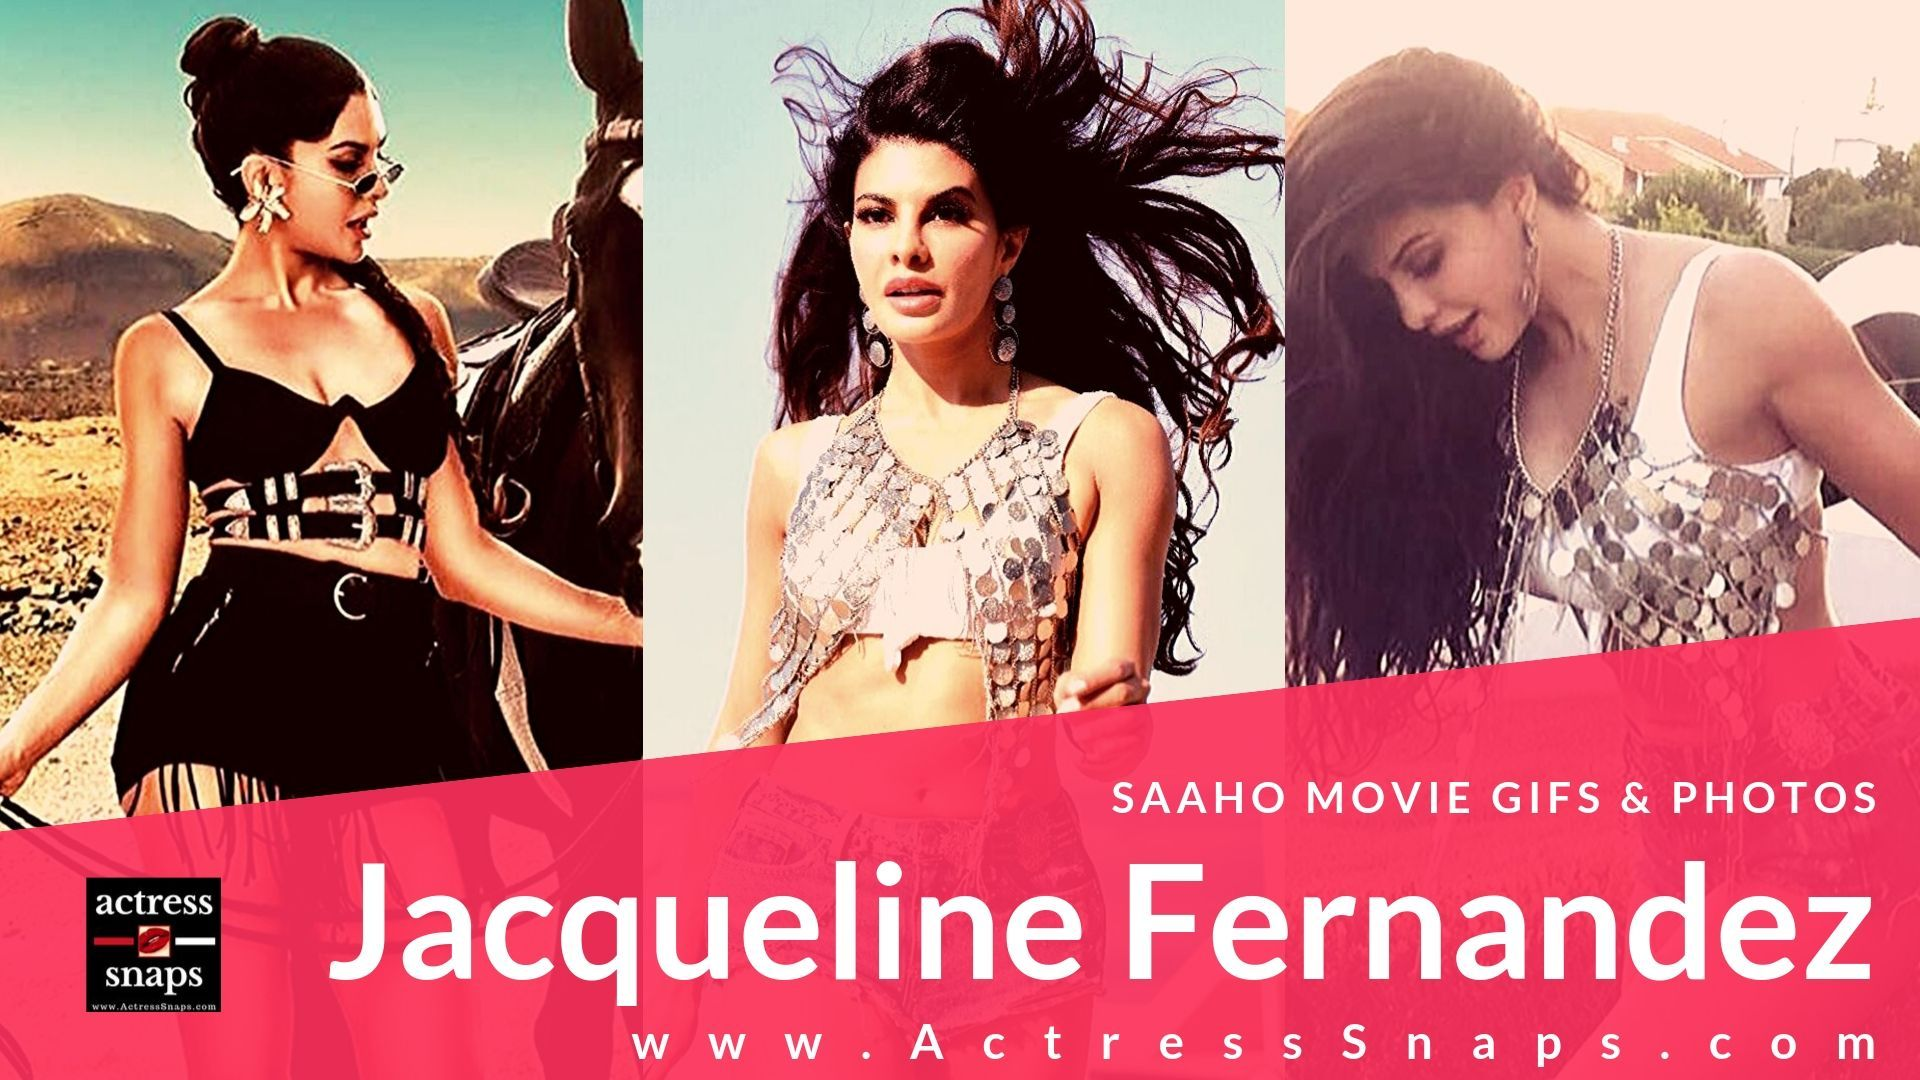 Jacqueline Fernandez - Saaho Movie Gifs - Sexy Actress Pictures | Hot Actress Pictures - ActressSnaps.com